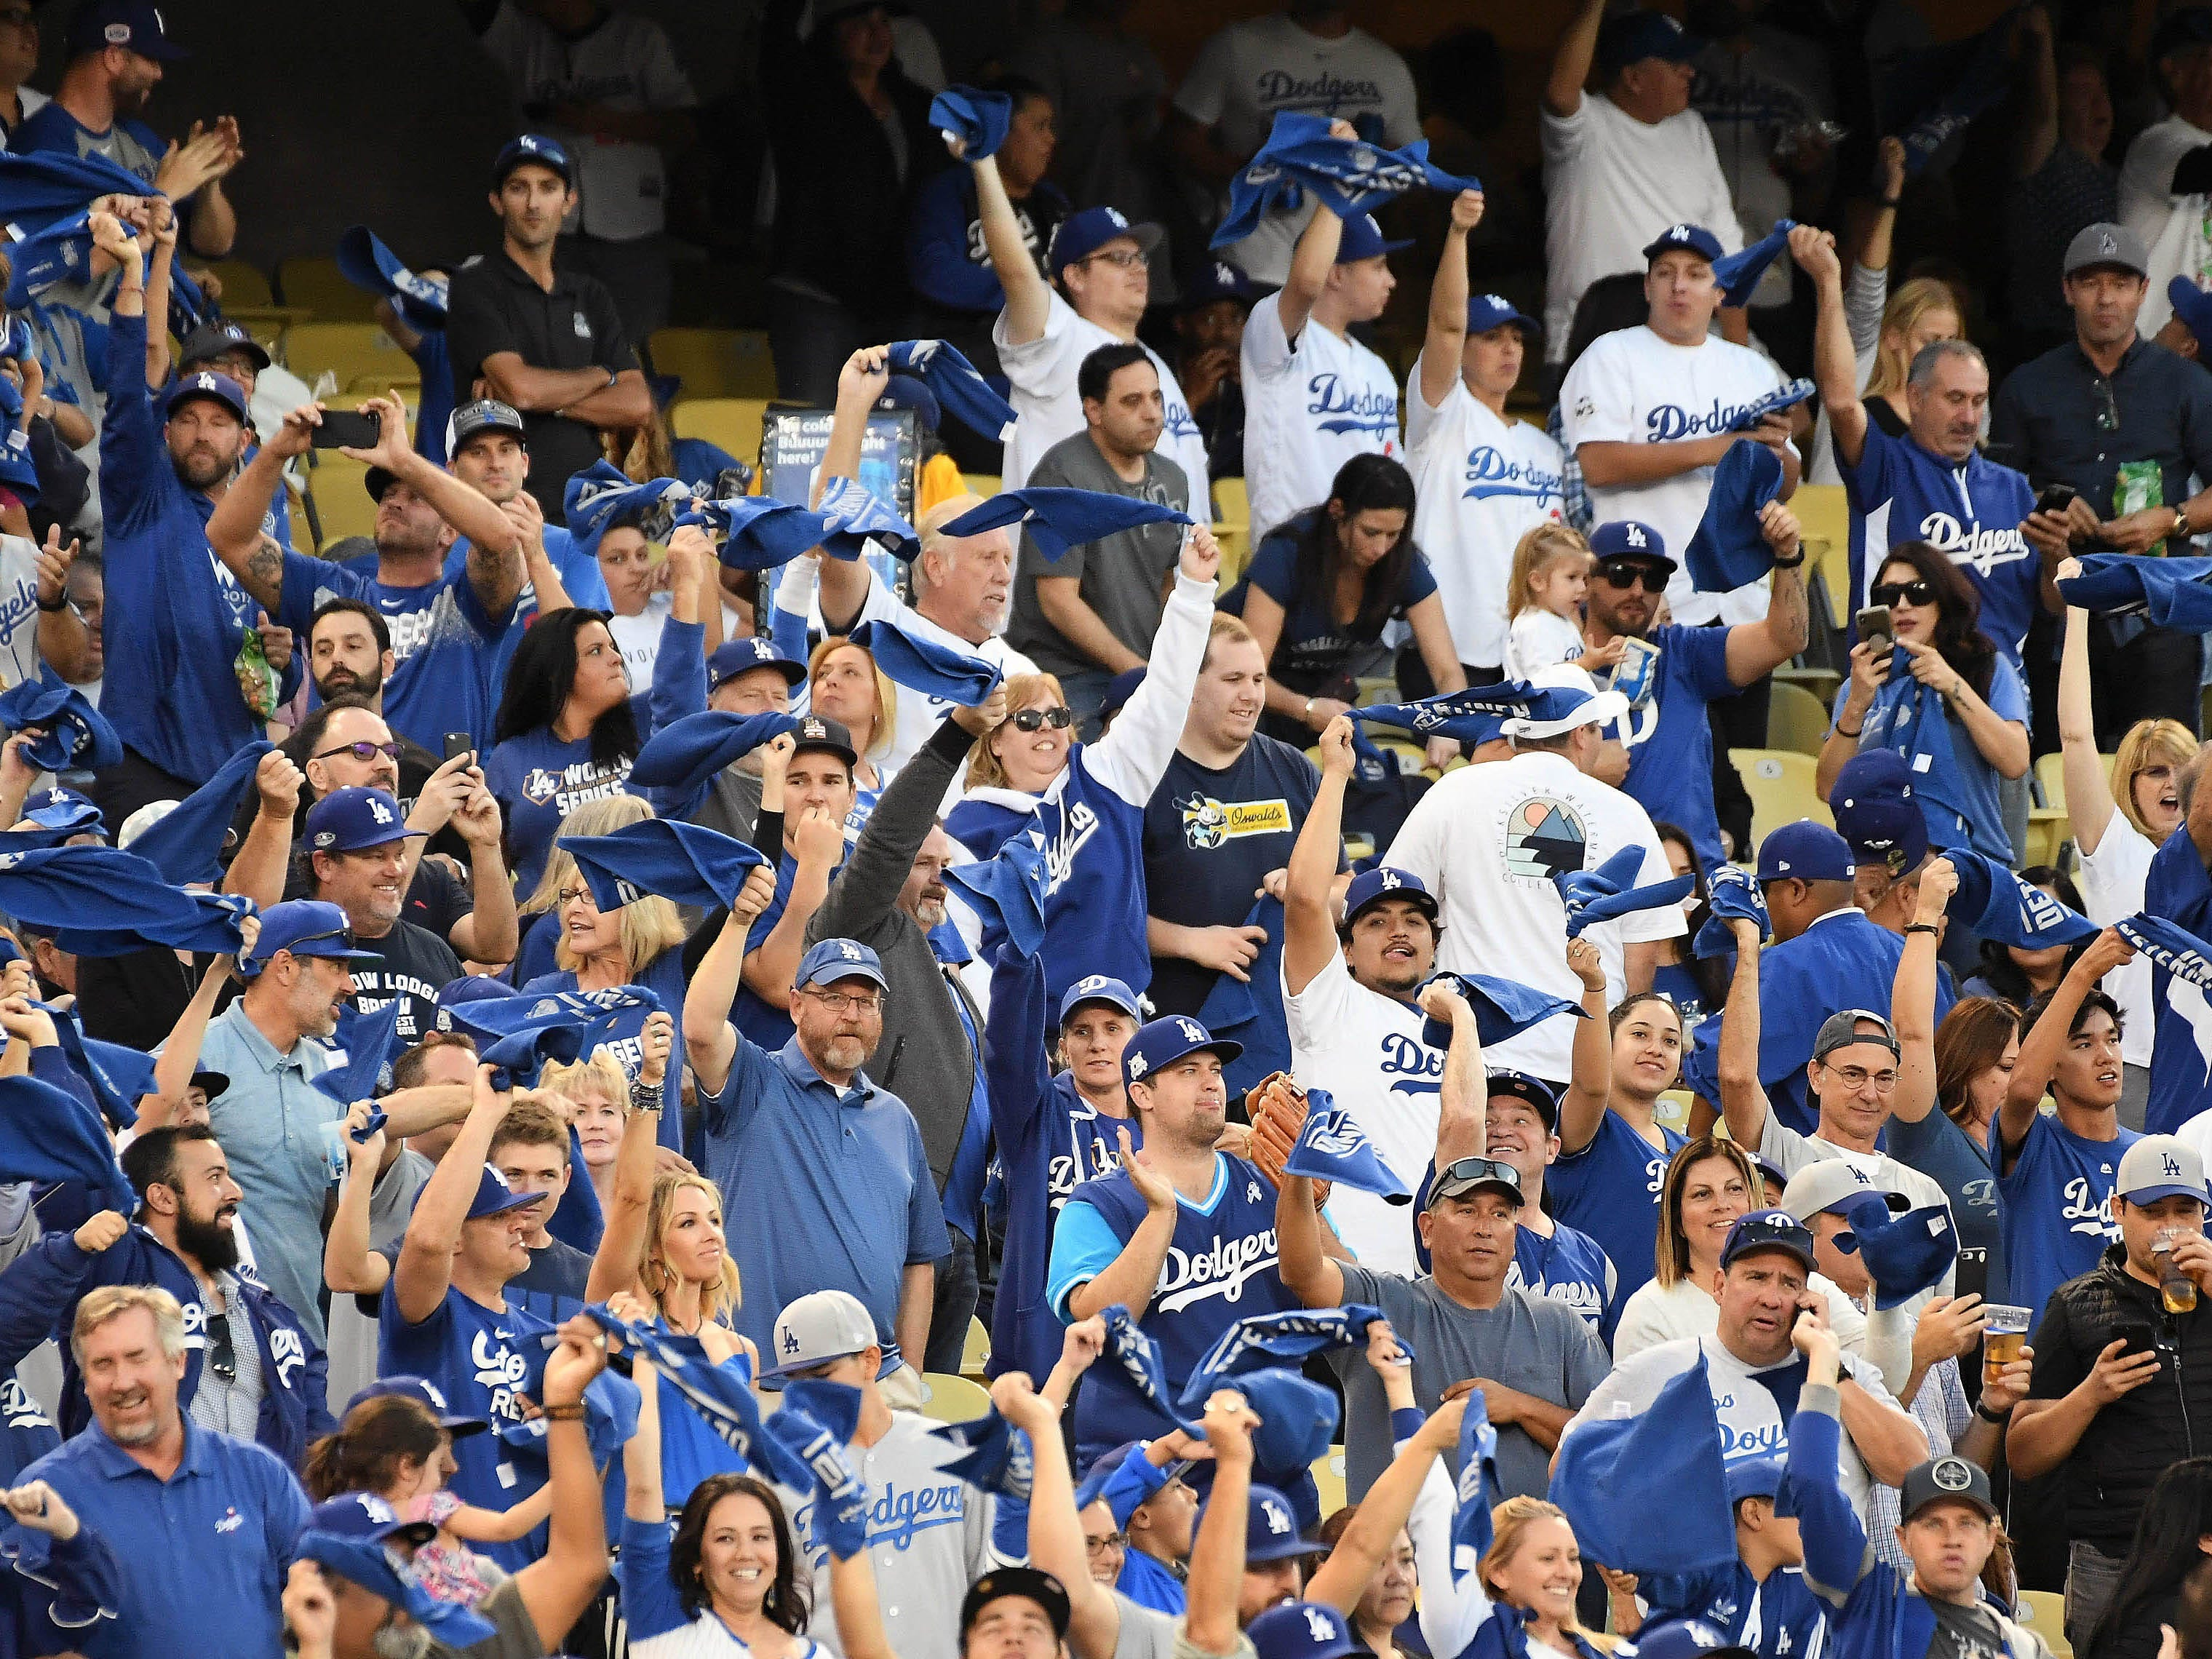 NLCS Game 4: Dodgers fans show their energy before the game.